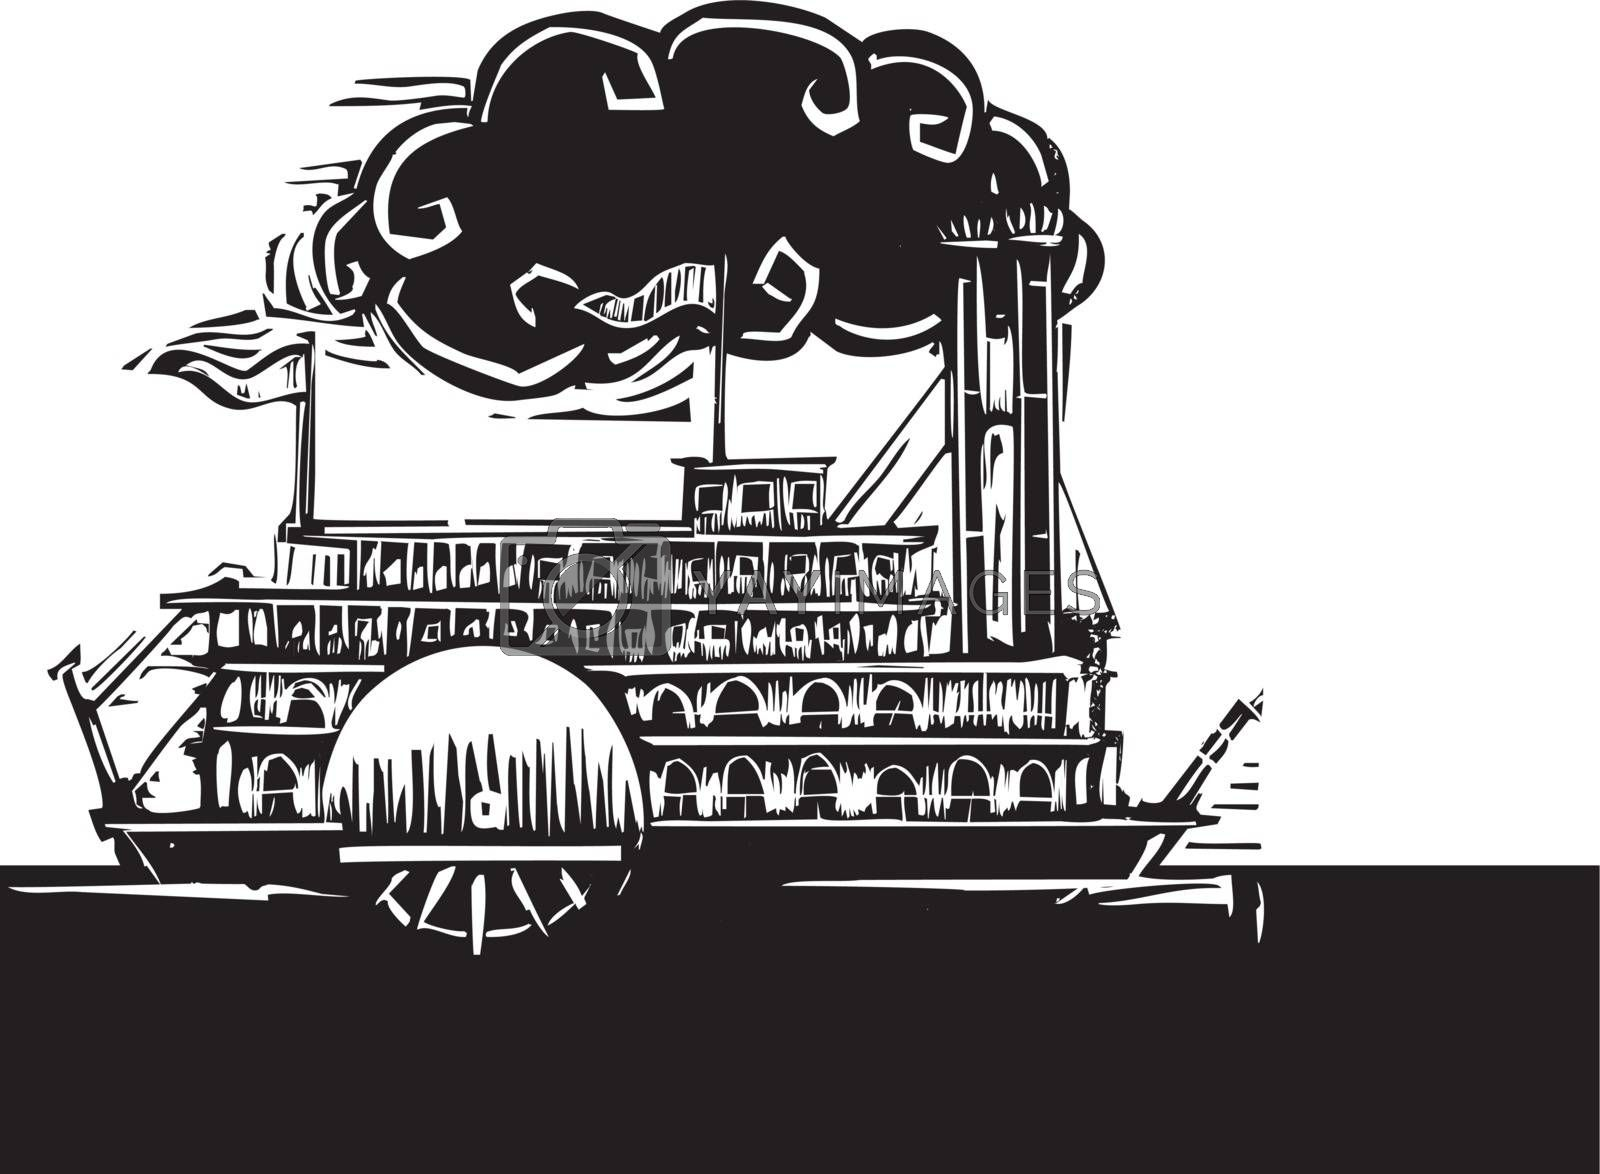 Woodcut style side wheel Mississippi river steamboat on dark water.